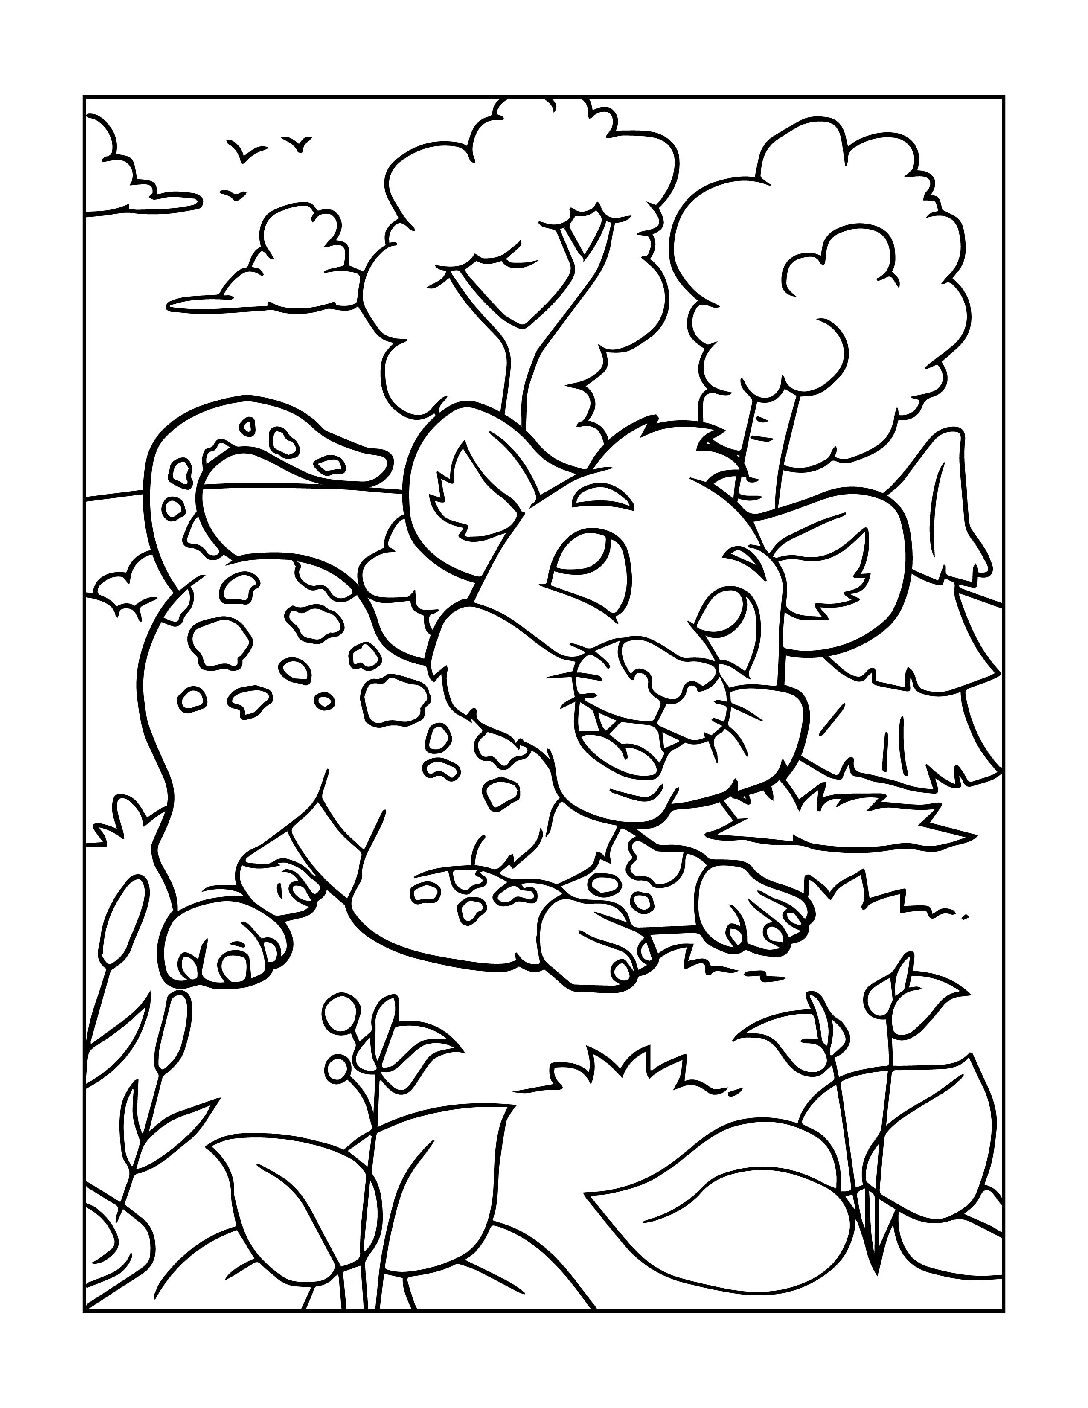 zoo animals colouring zoo coloring pages free download on clipartmag animals zoo colouring